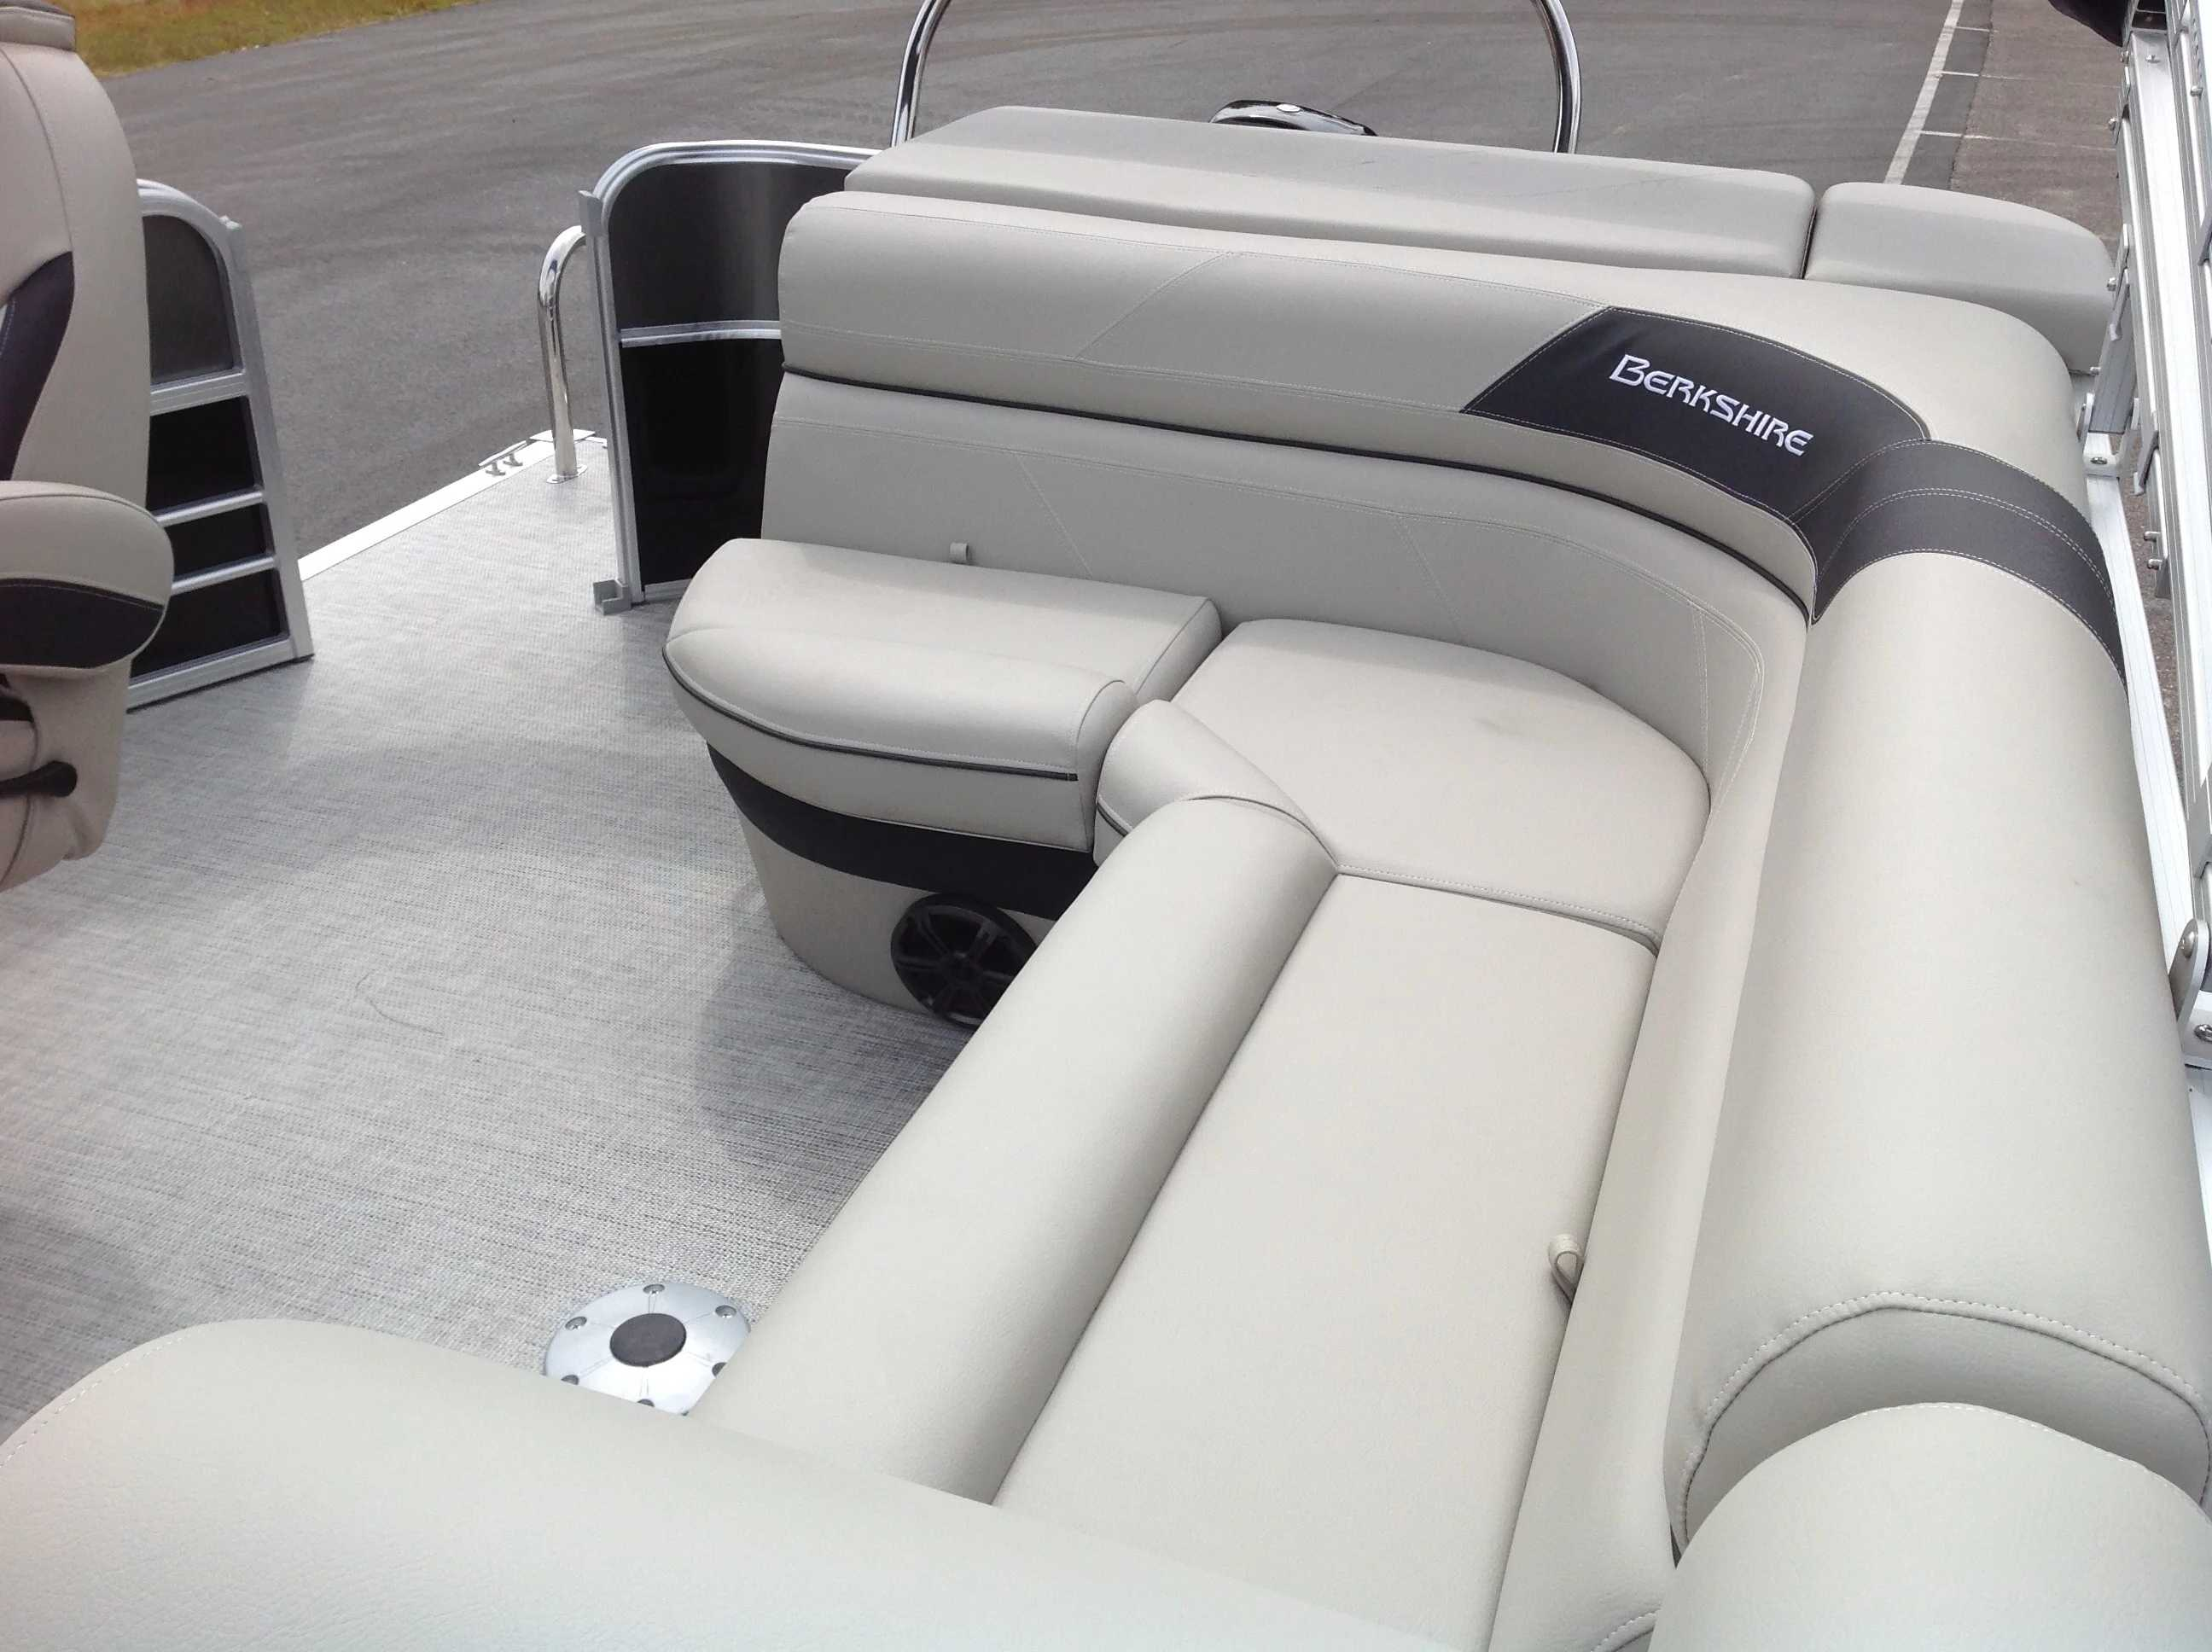 2021 Berkshire Pontoons boat for sale, model of the boat is 20cl Le & Image # 9 of 13